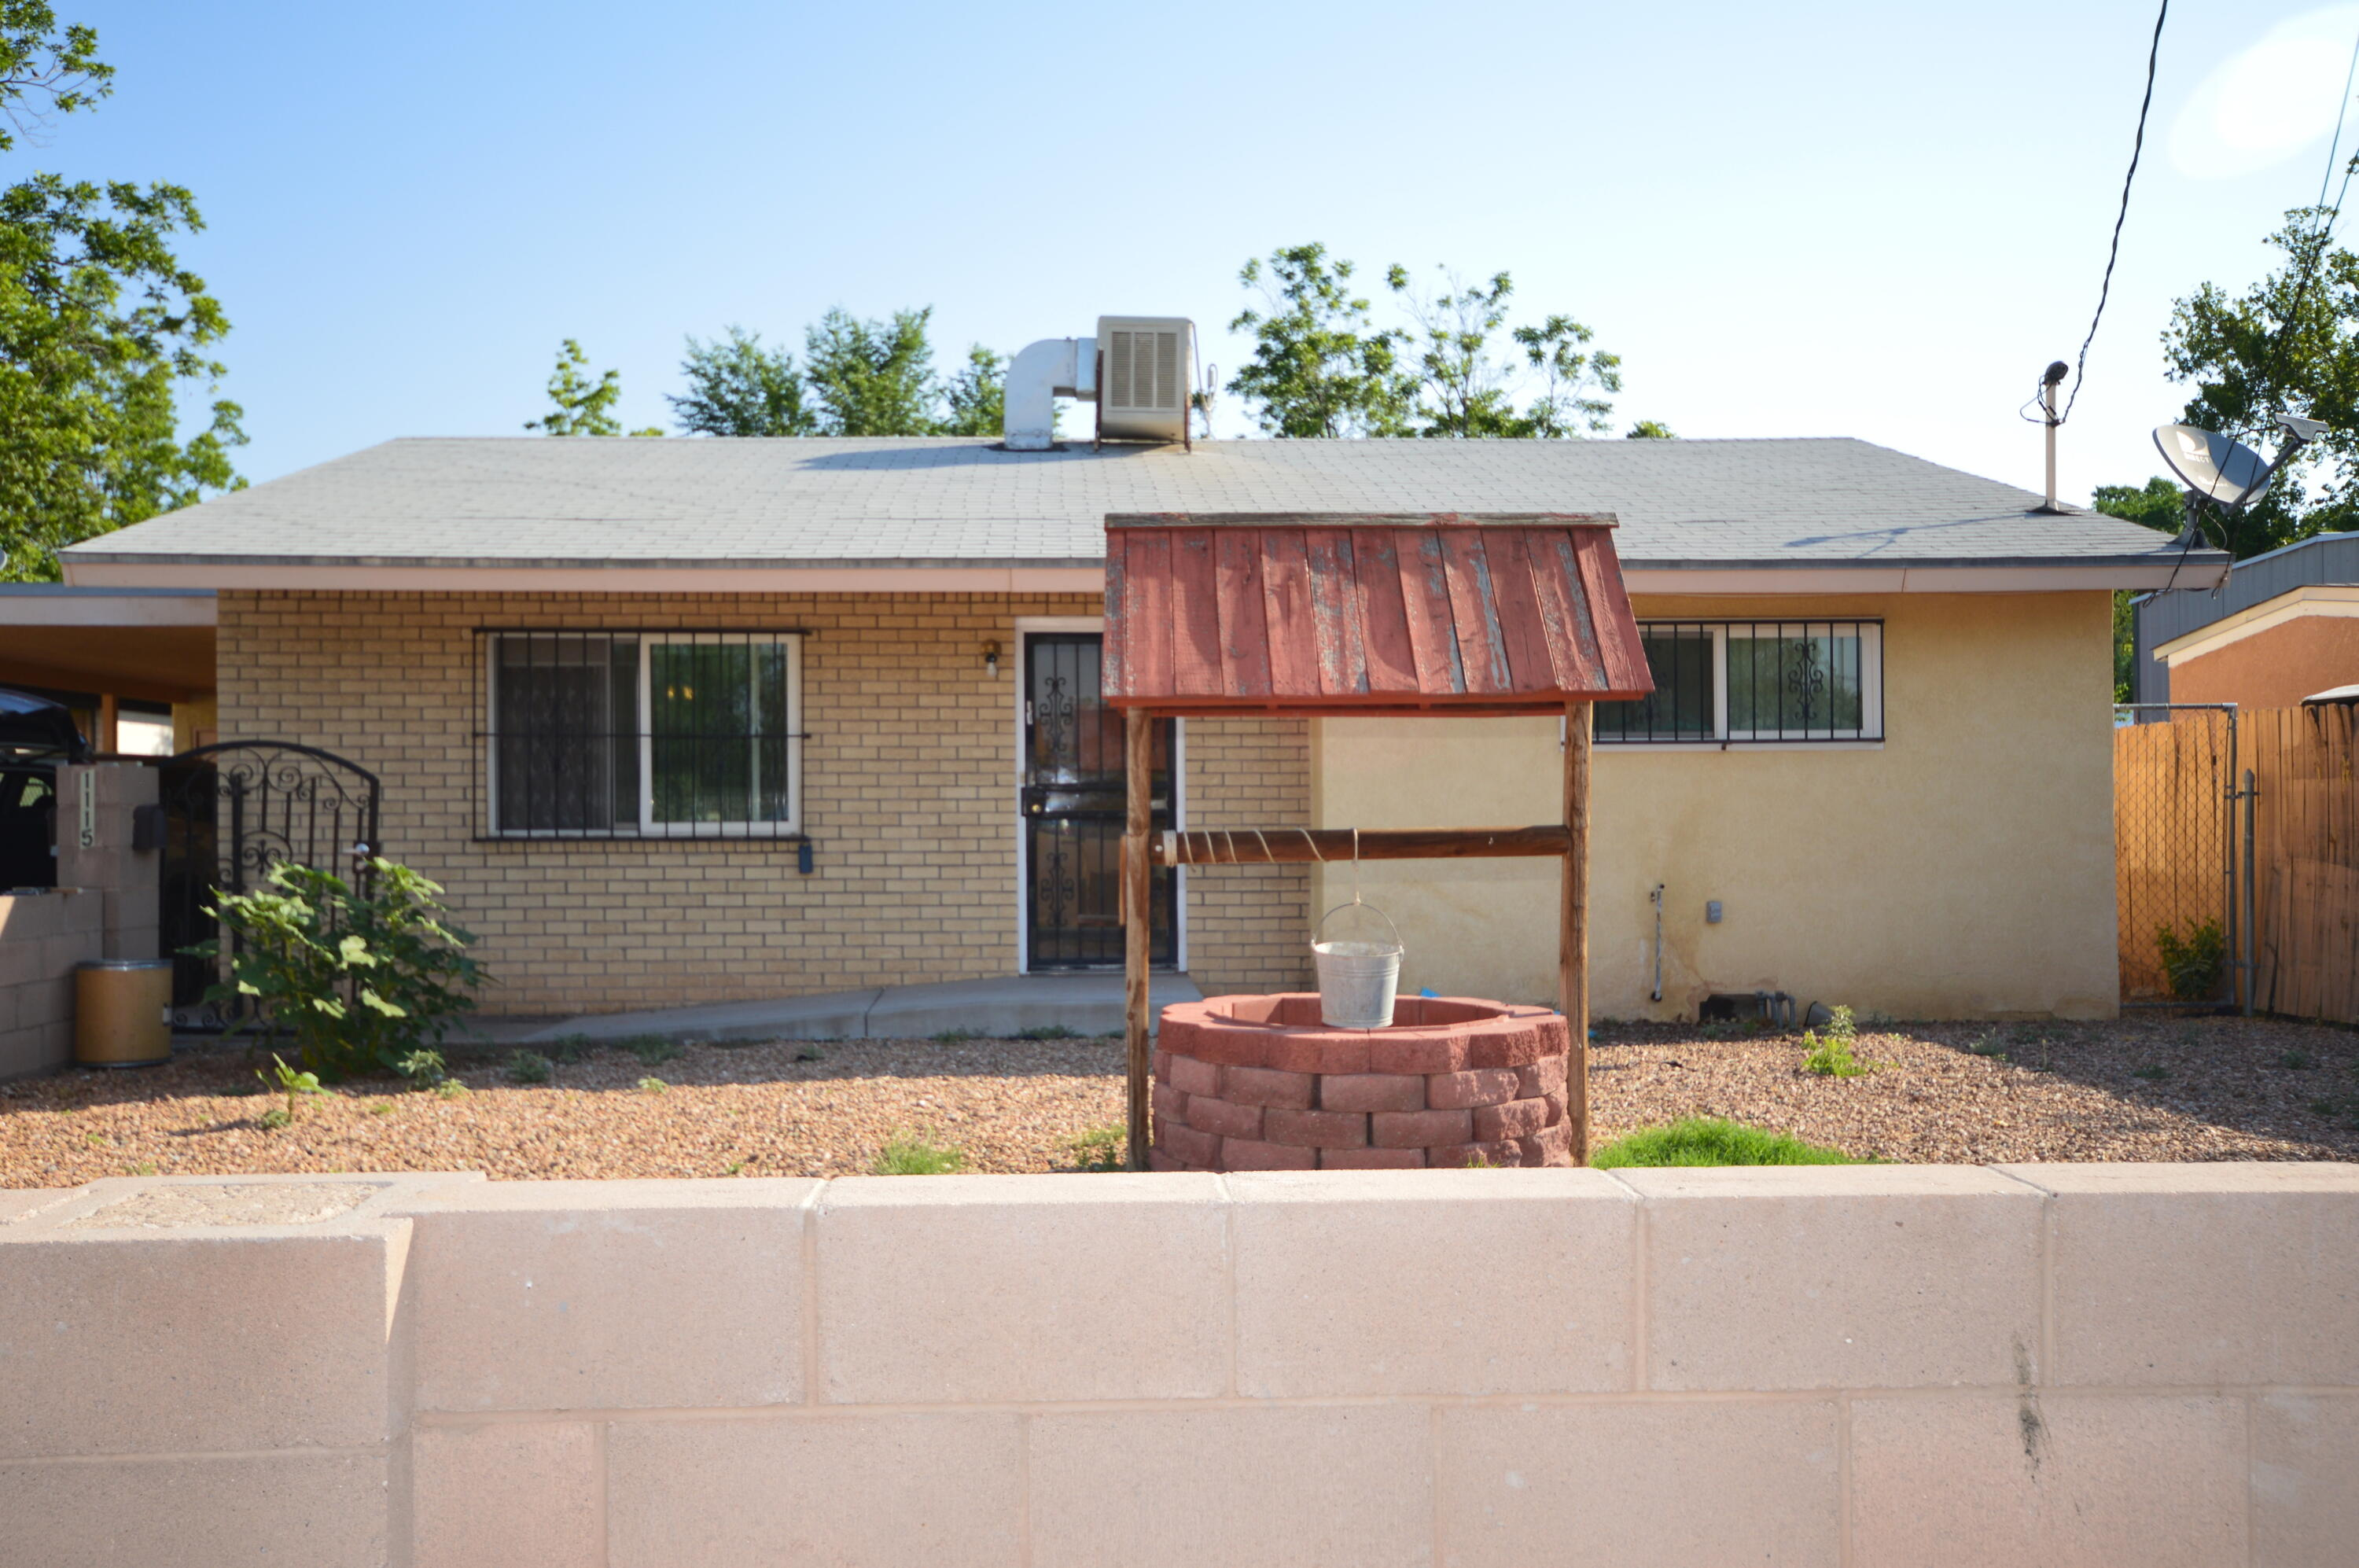 Located on a quiet street, this north valley home has a large living room, dining room and kitchen complete with gas stove, dishwasher and refrigerator. Two spacious bedrooms: master with large walkin closet and second bedroom with builtin desk. Living/dining room and bedrooms have laminate flooring. Covered carport and storage room. Backyard is highlighted by large covered patio and storage shed.